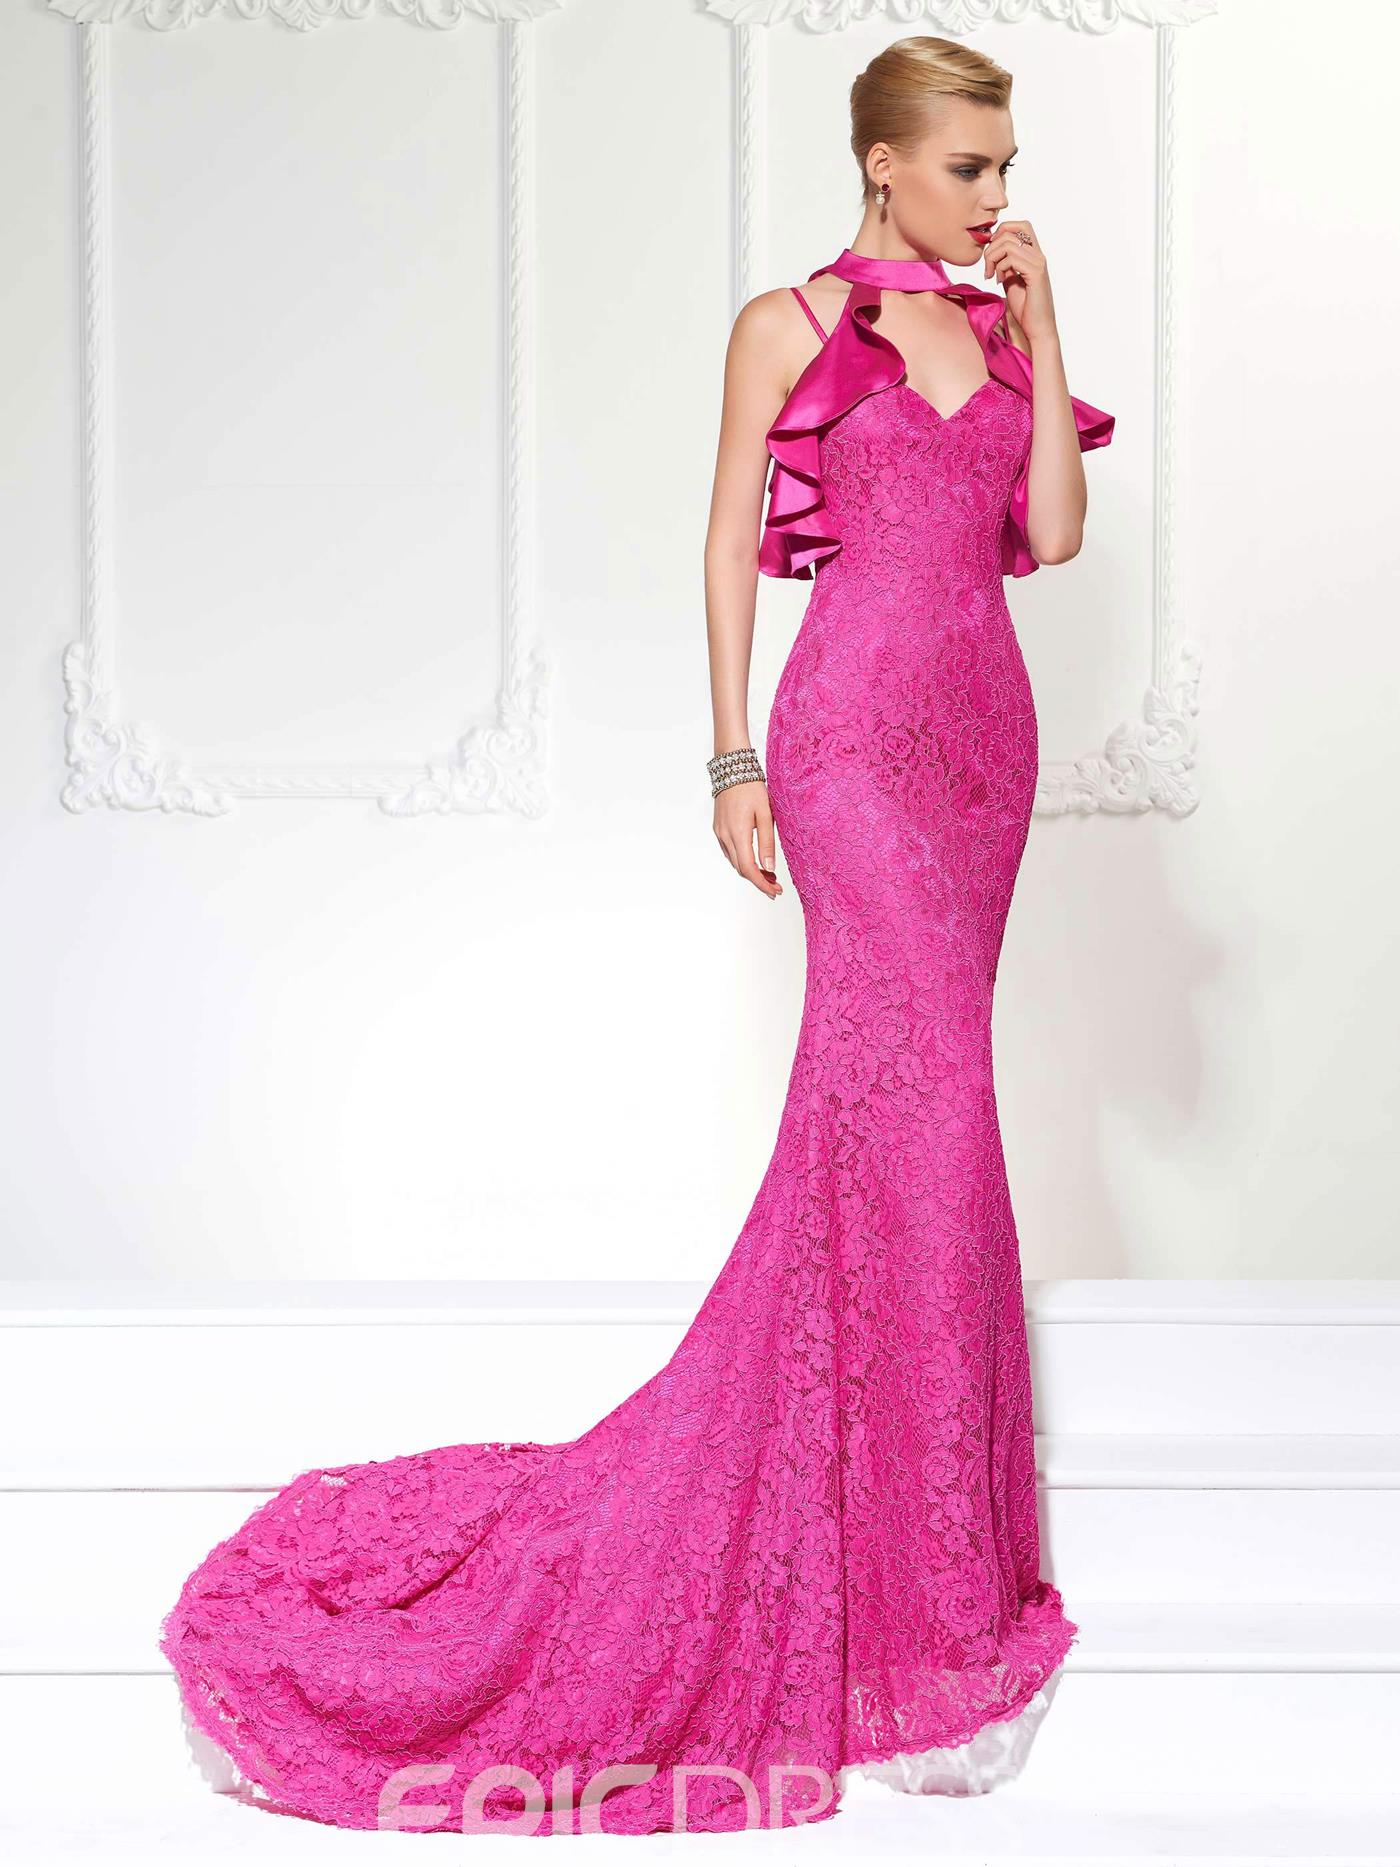 Ericdress Vintage Spaghetti Strap With Detachable Collar Lace Mermaid Evening Dress With Court Train